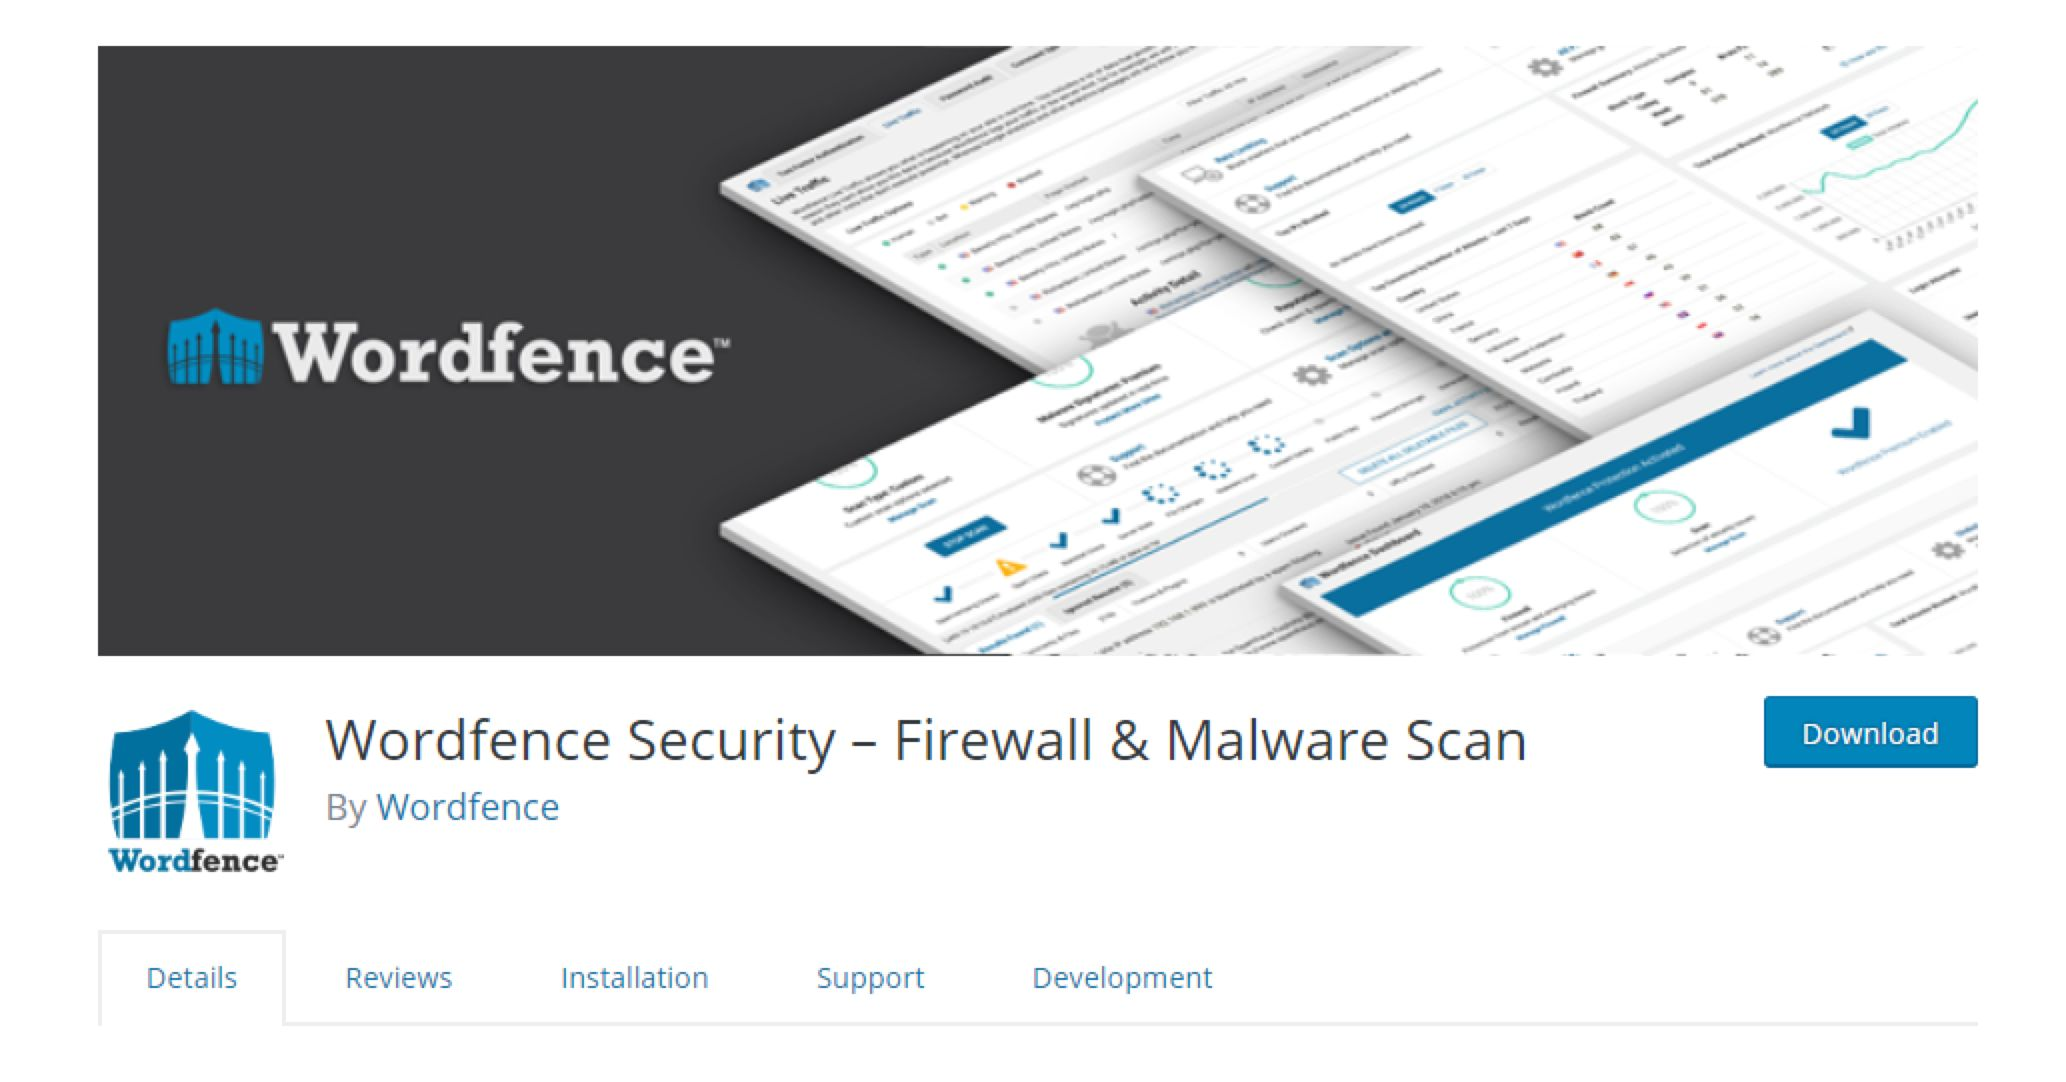 Wordfence marketing image